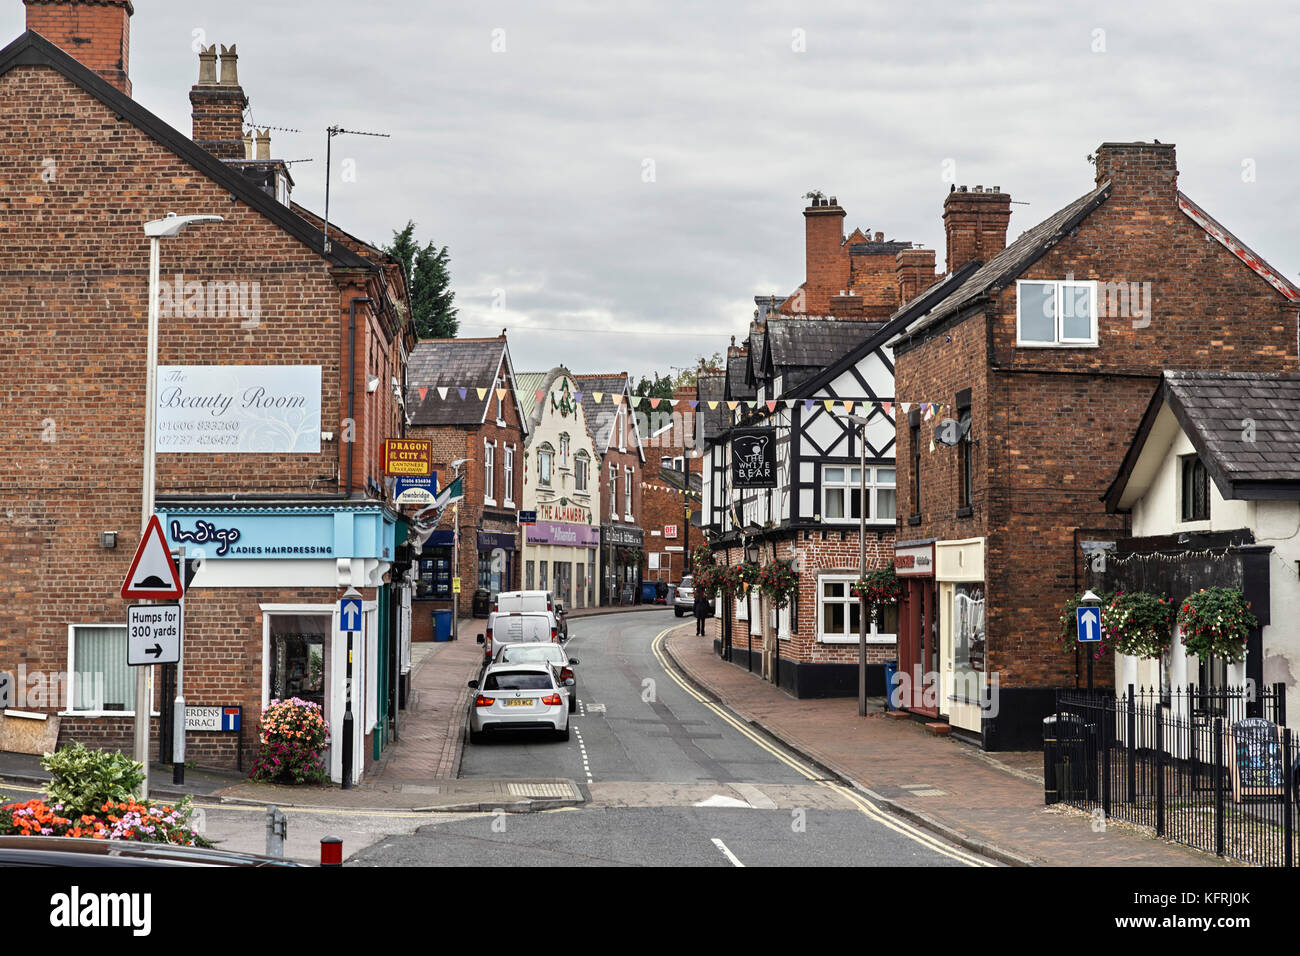 Wheelock Street in Middlewich with shops and restaurants - Stock Image